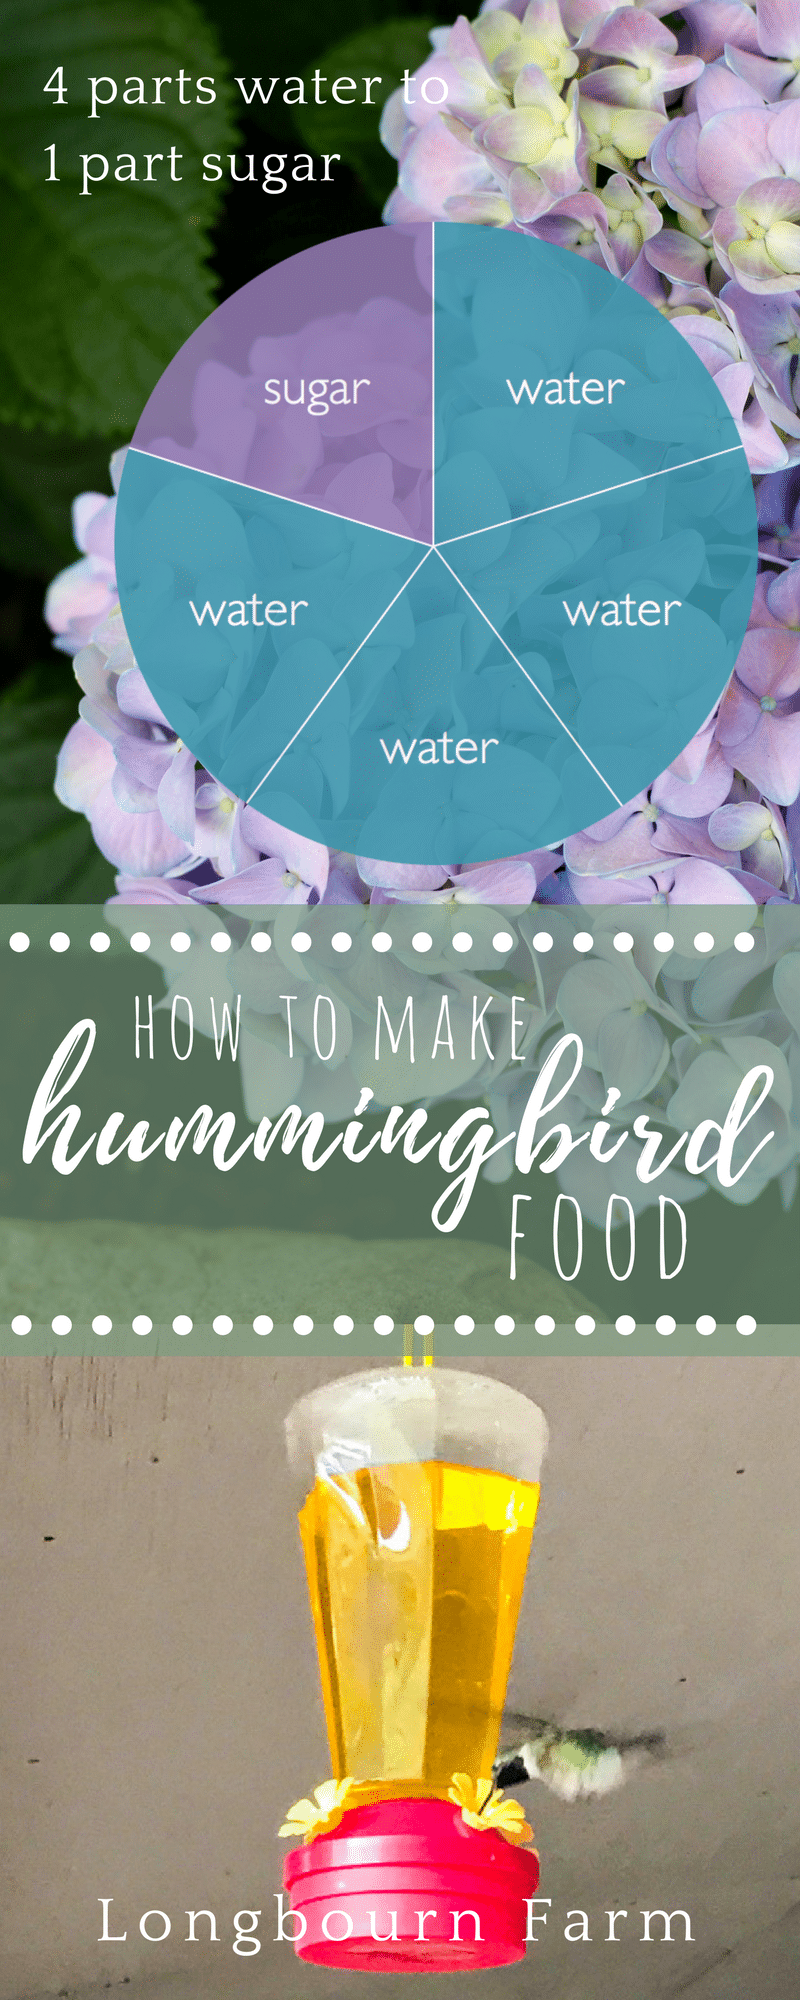 Learning how to make this hummingbird food recipe is as simple! Get the exact directions here and keep those little birds coming back to your yard! via @longbournfarm